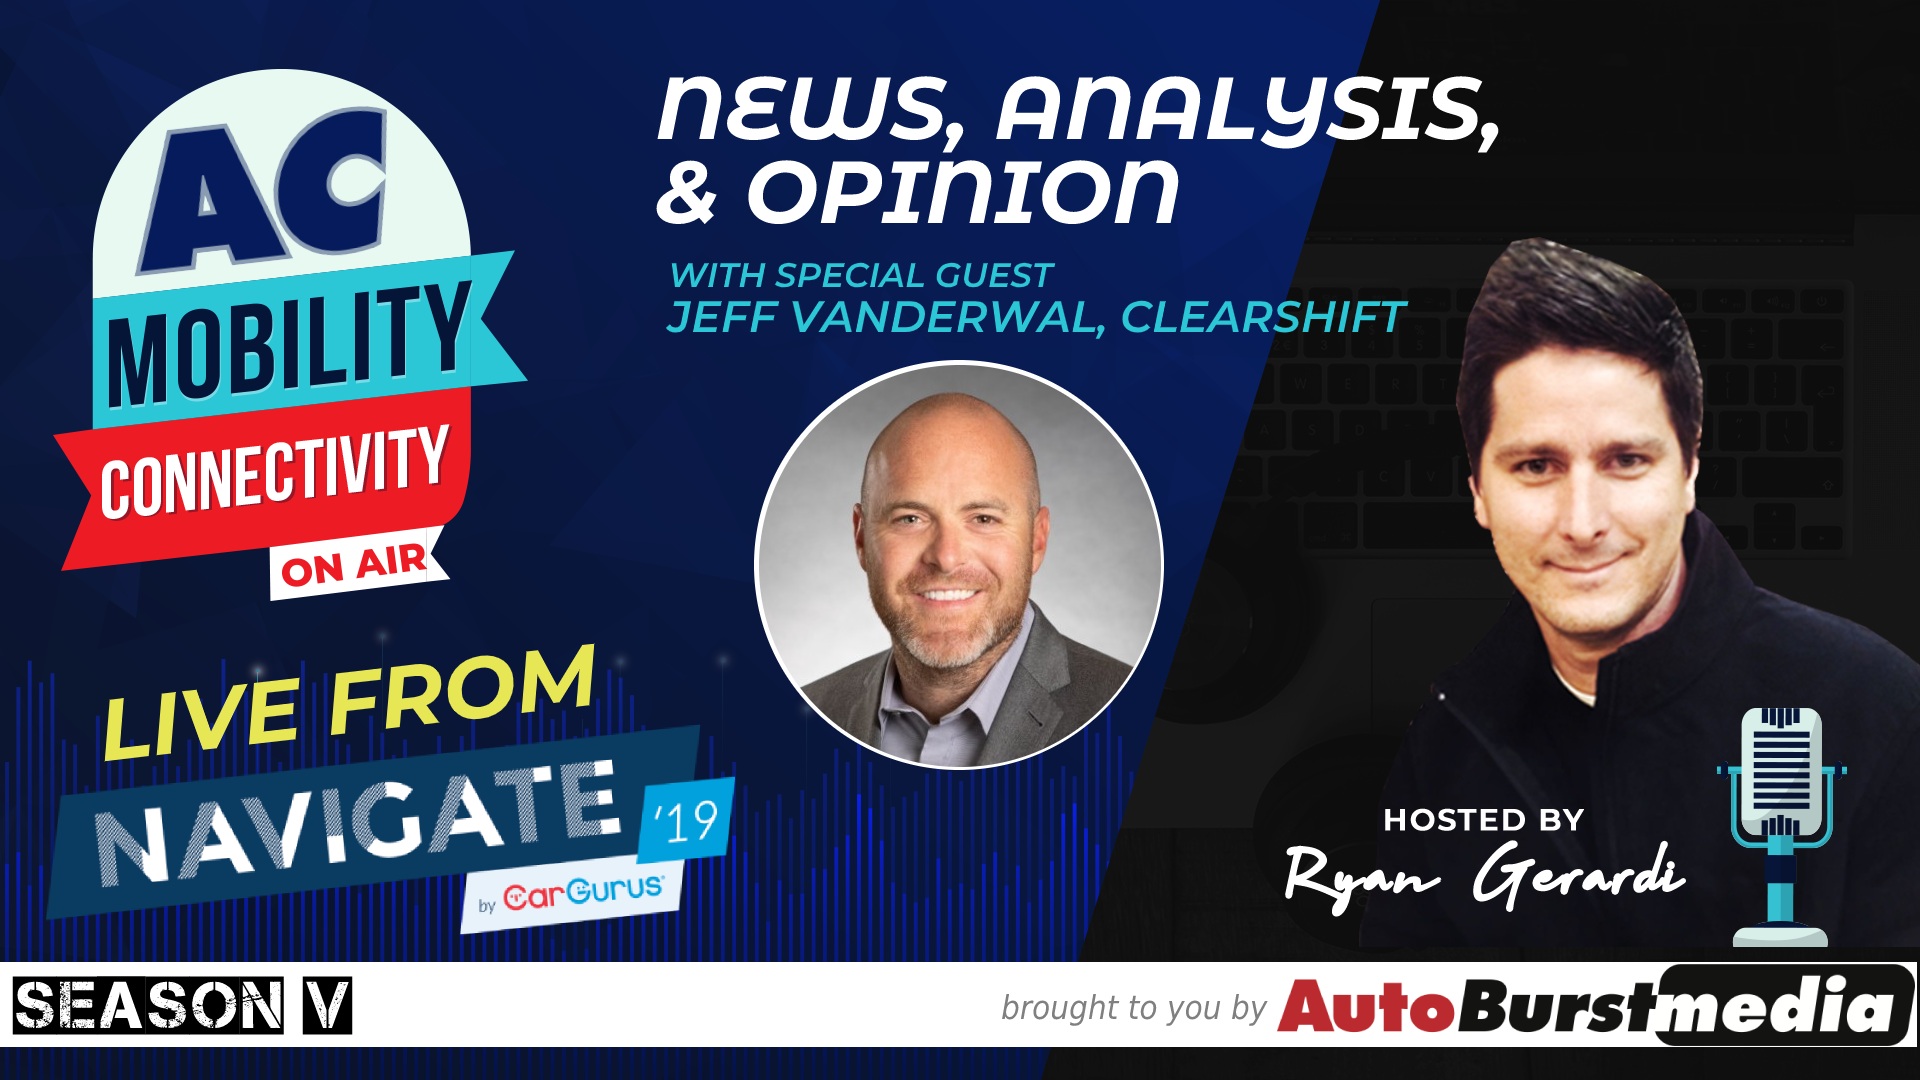 WED OCT 23 🎙 Not Your Dad's Car Lot 💬 Conversation with Jeff VanderWal of ClearShift